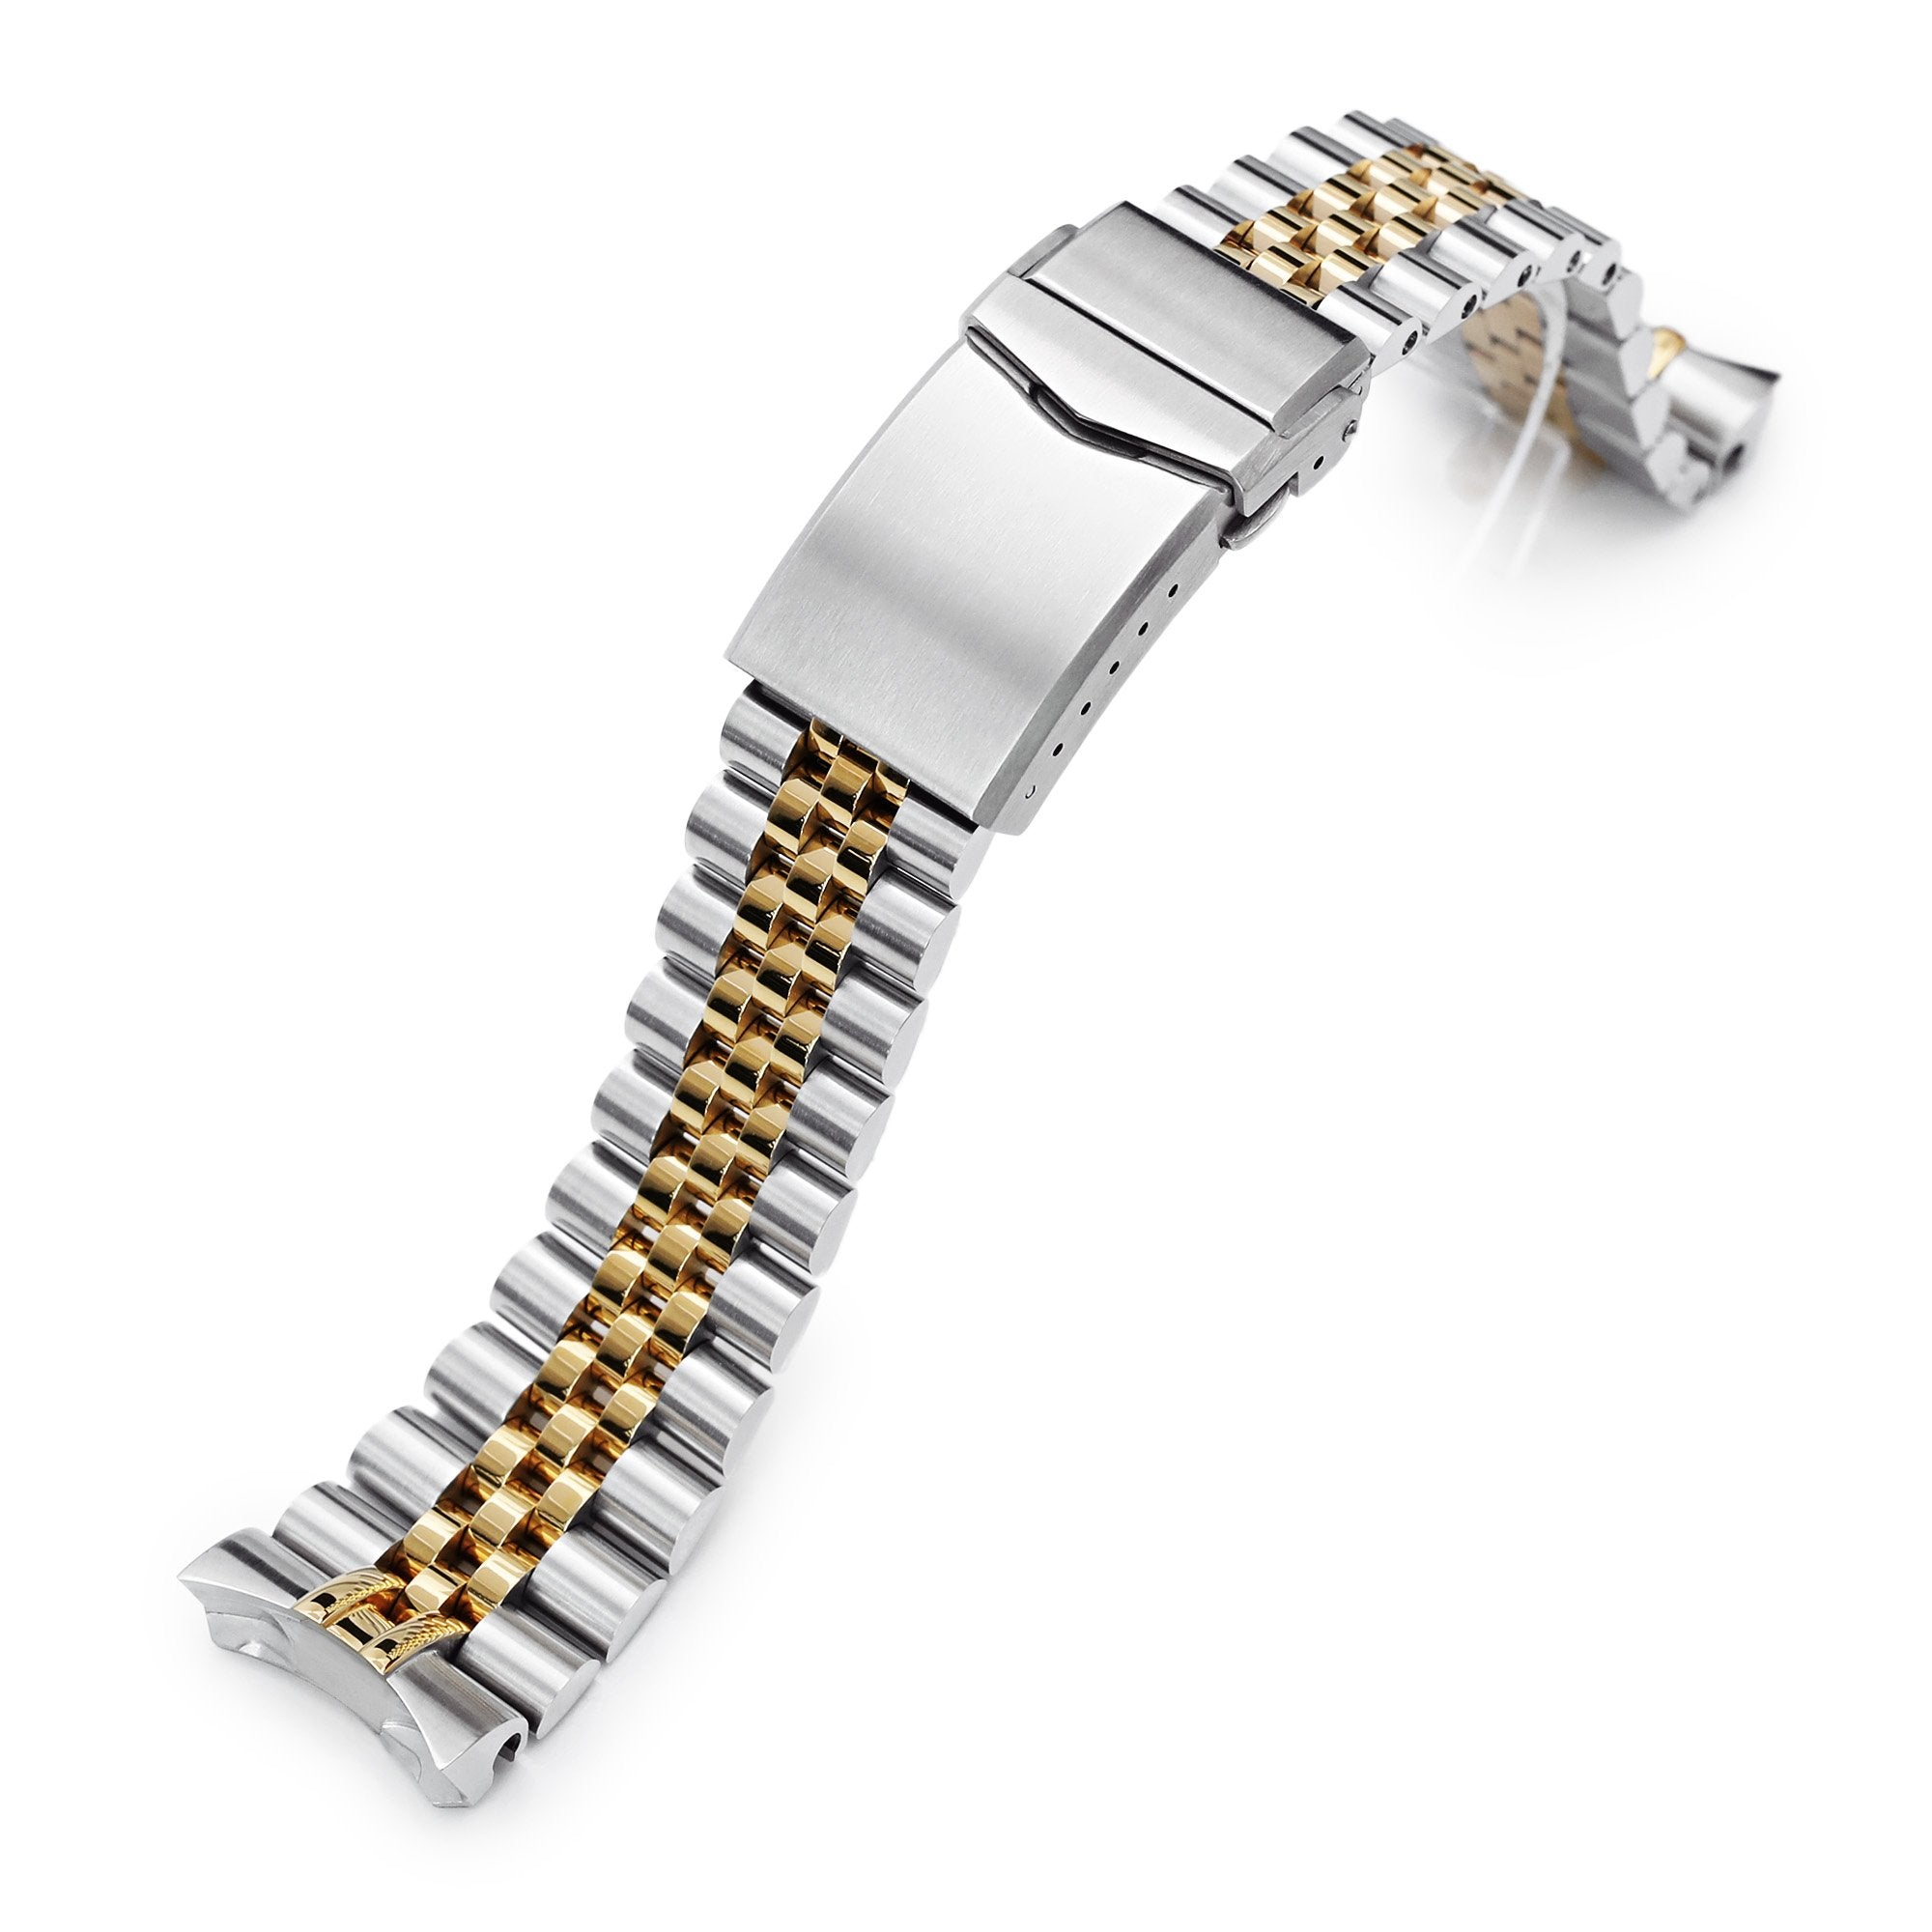 22mm Super-J Louis 316L Stainless Steel Watch Band for Seiko 5, Two Tone IP Gold V-Clasp Strapcode Watch Bands